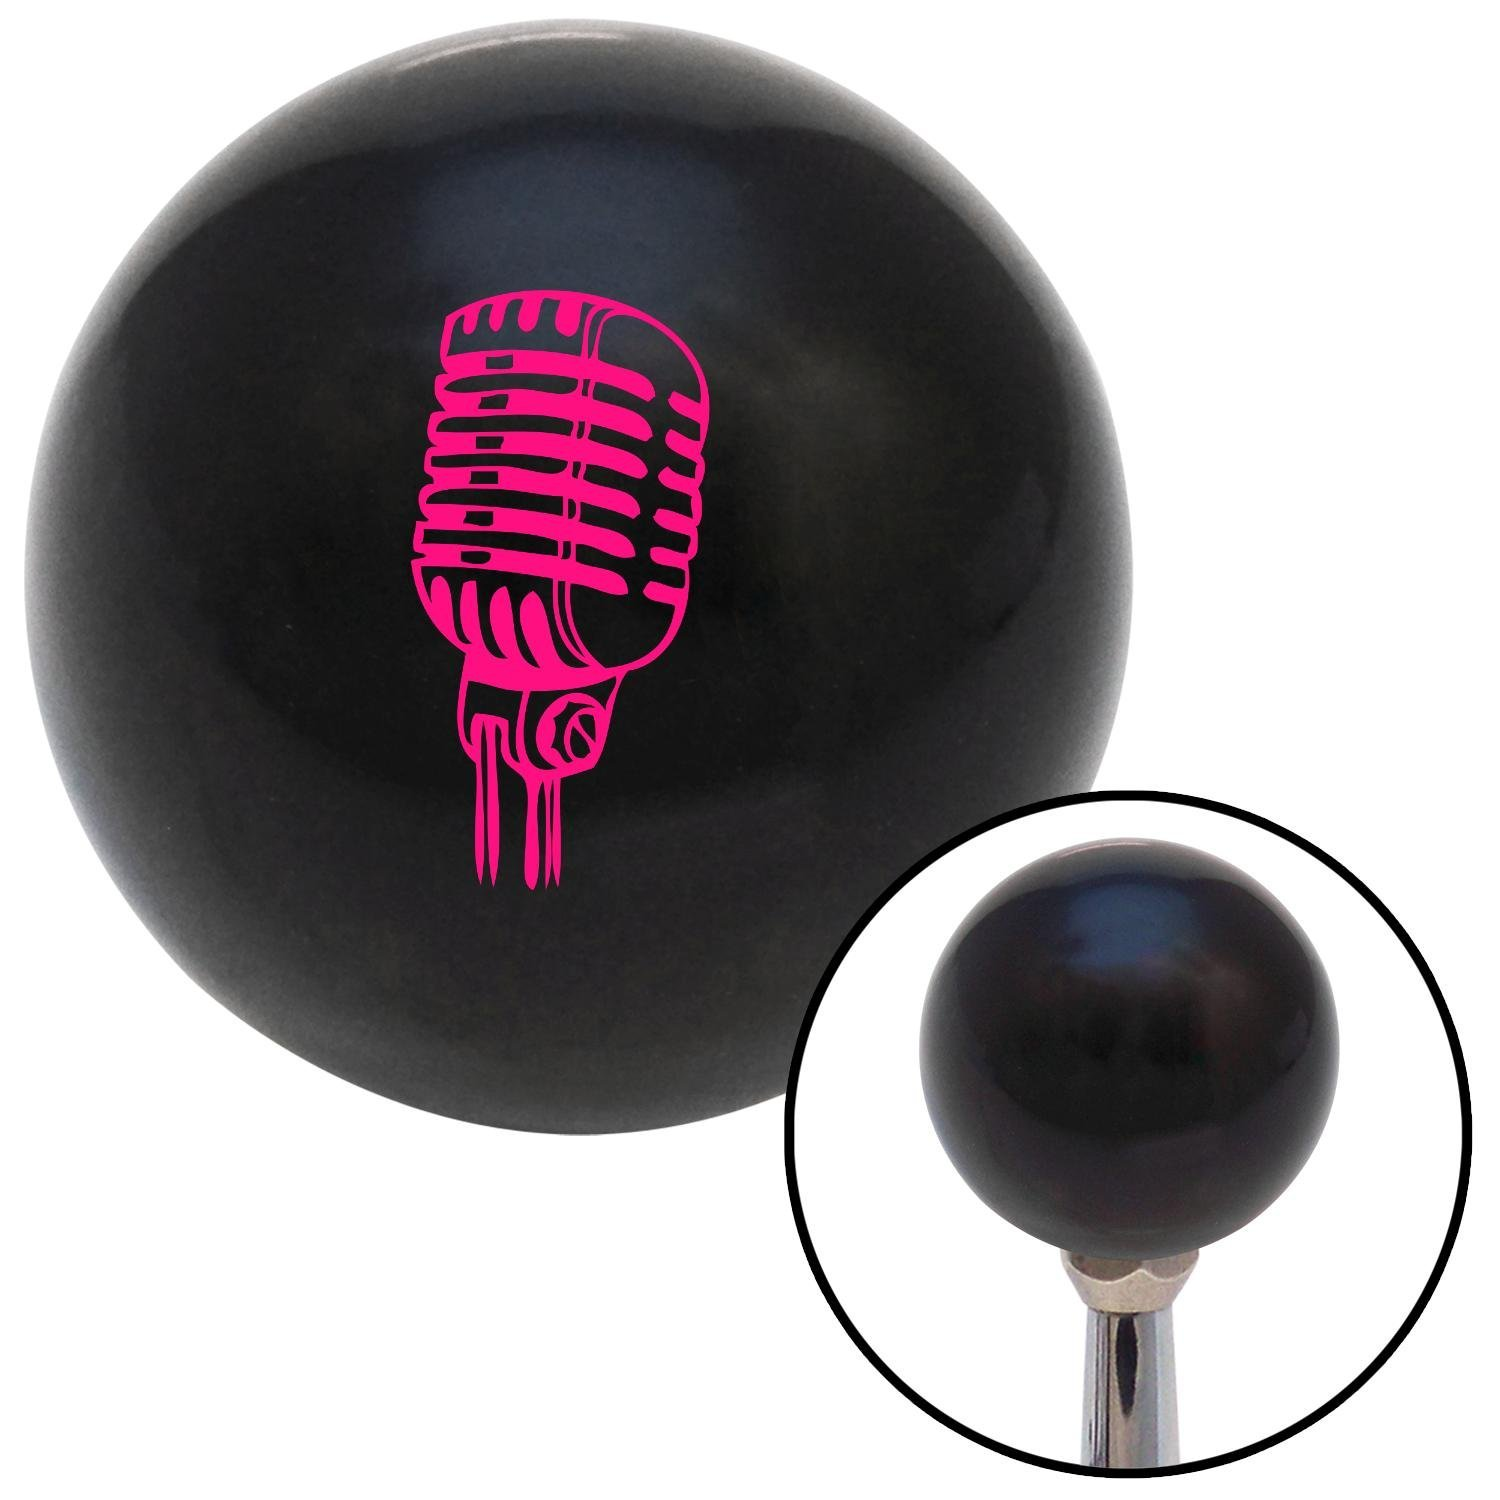 American Shifter 107318 Black Shift Knob with M16 x 1.5 Insert Pink Old School Microphone